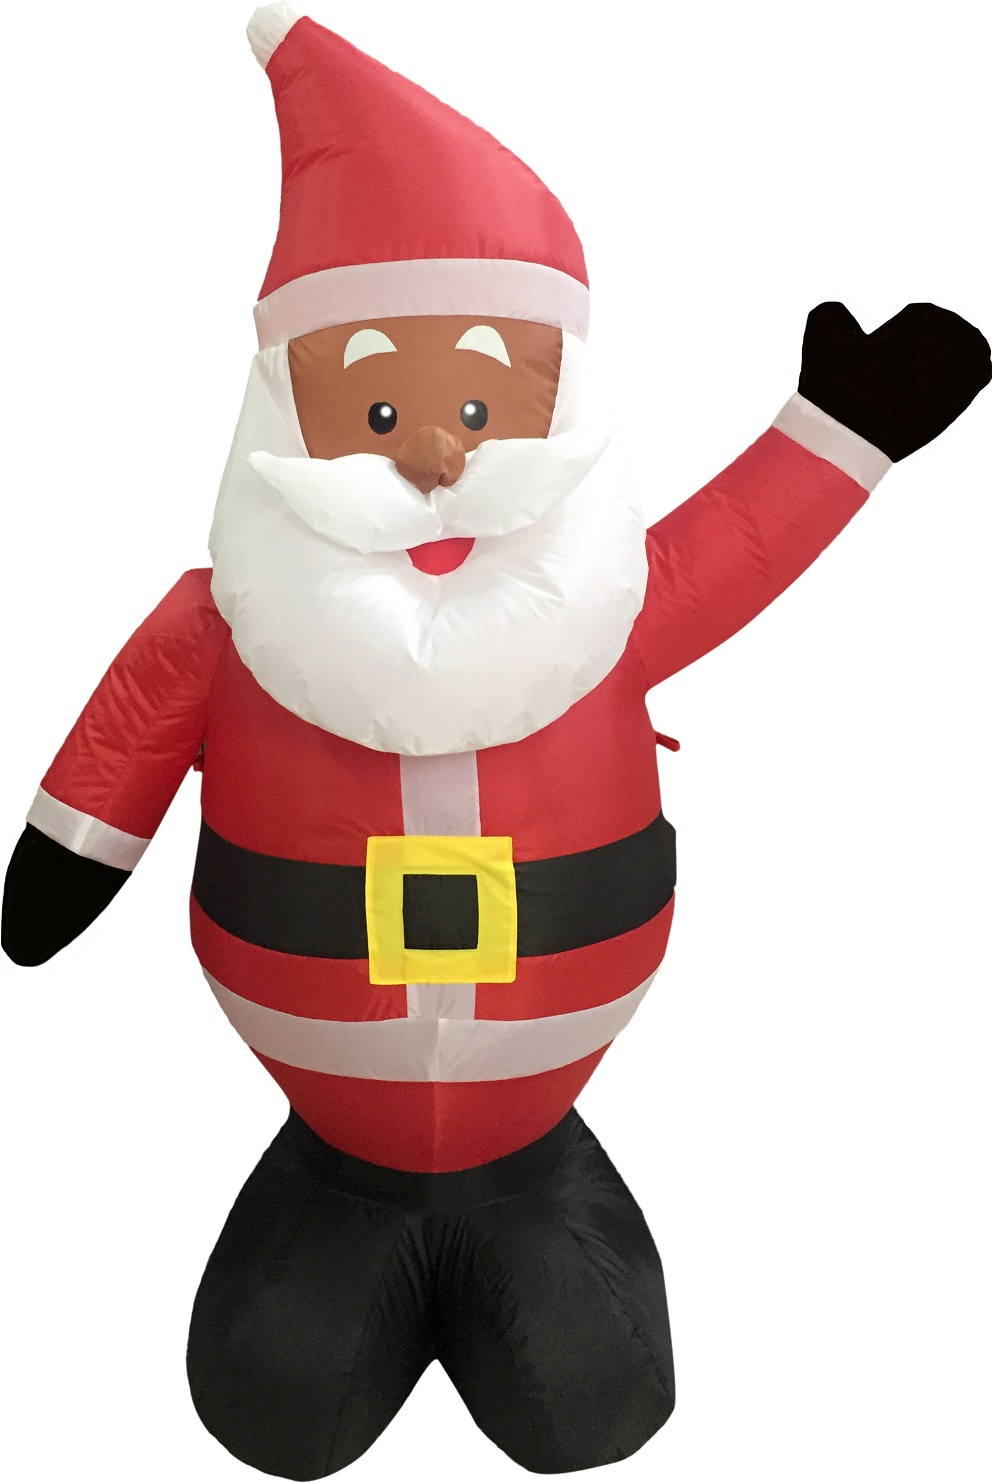 Black African American Santa Claus 4u0027 Inflatable Airblown Christmas Yard  Decor